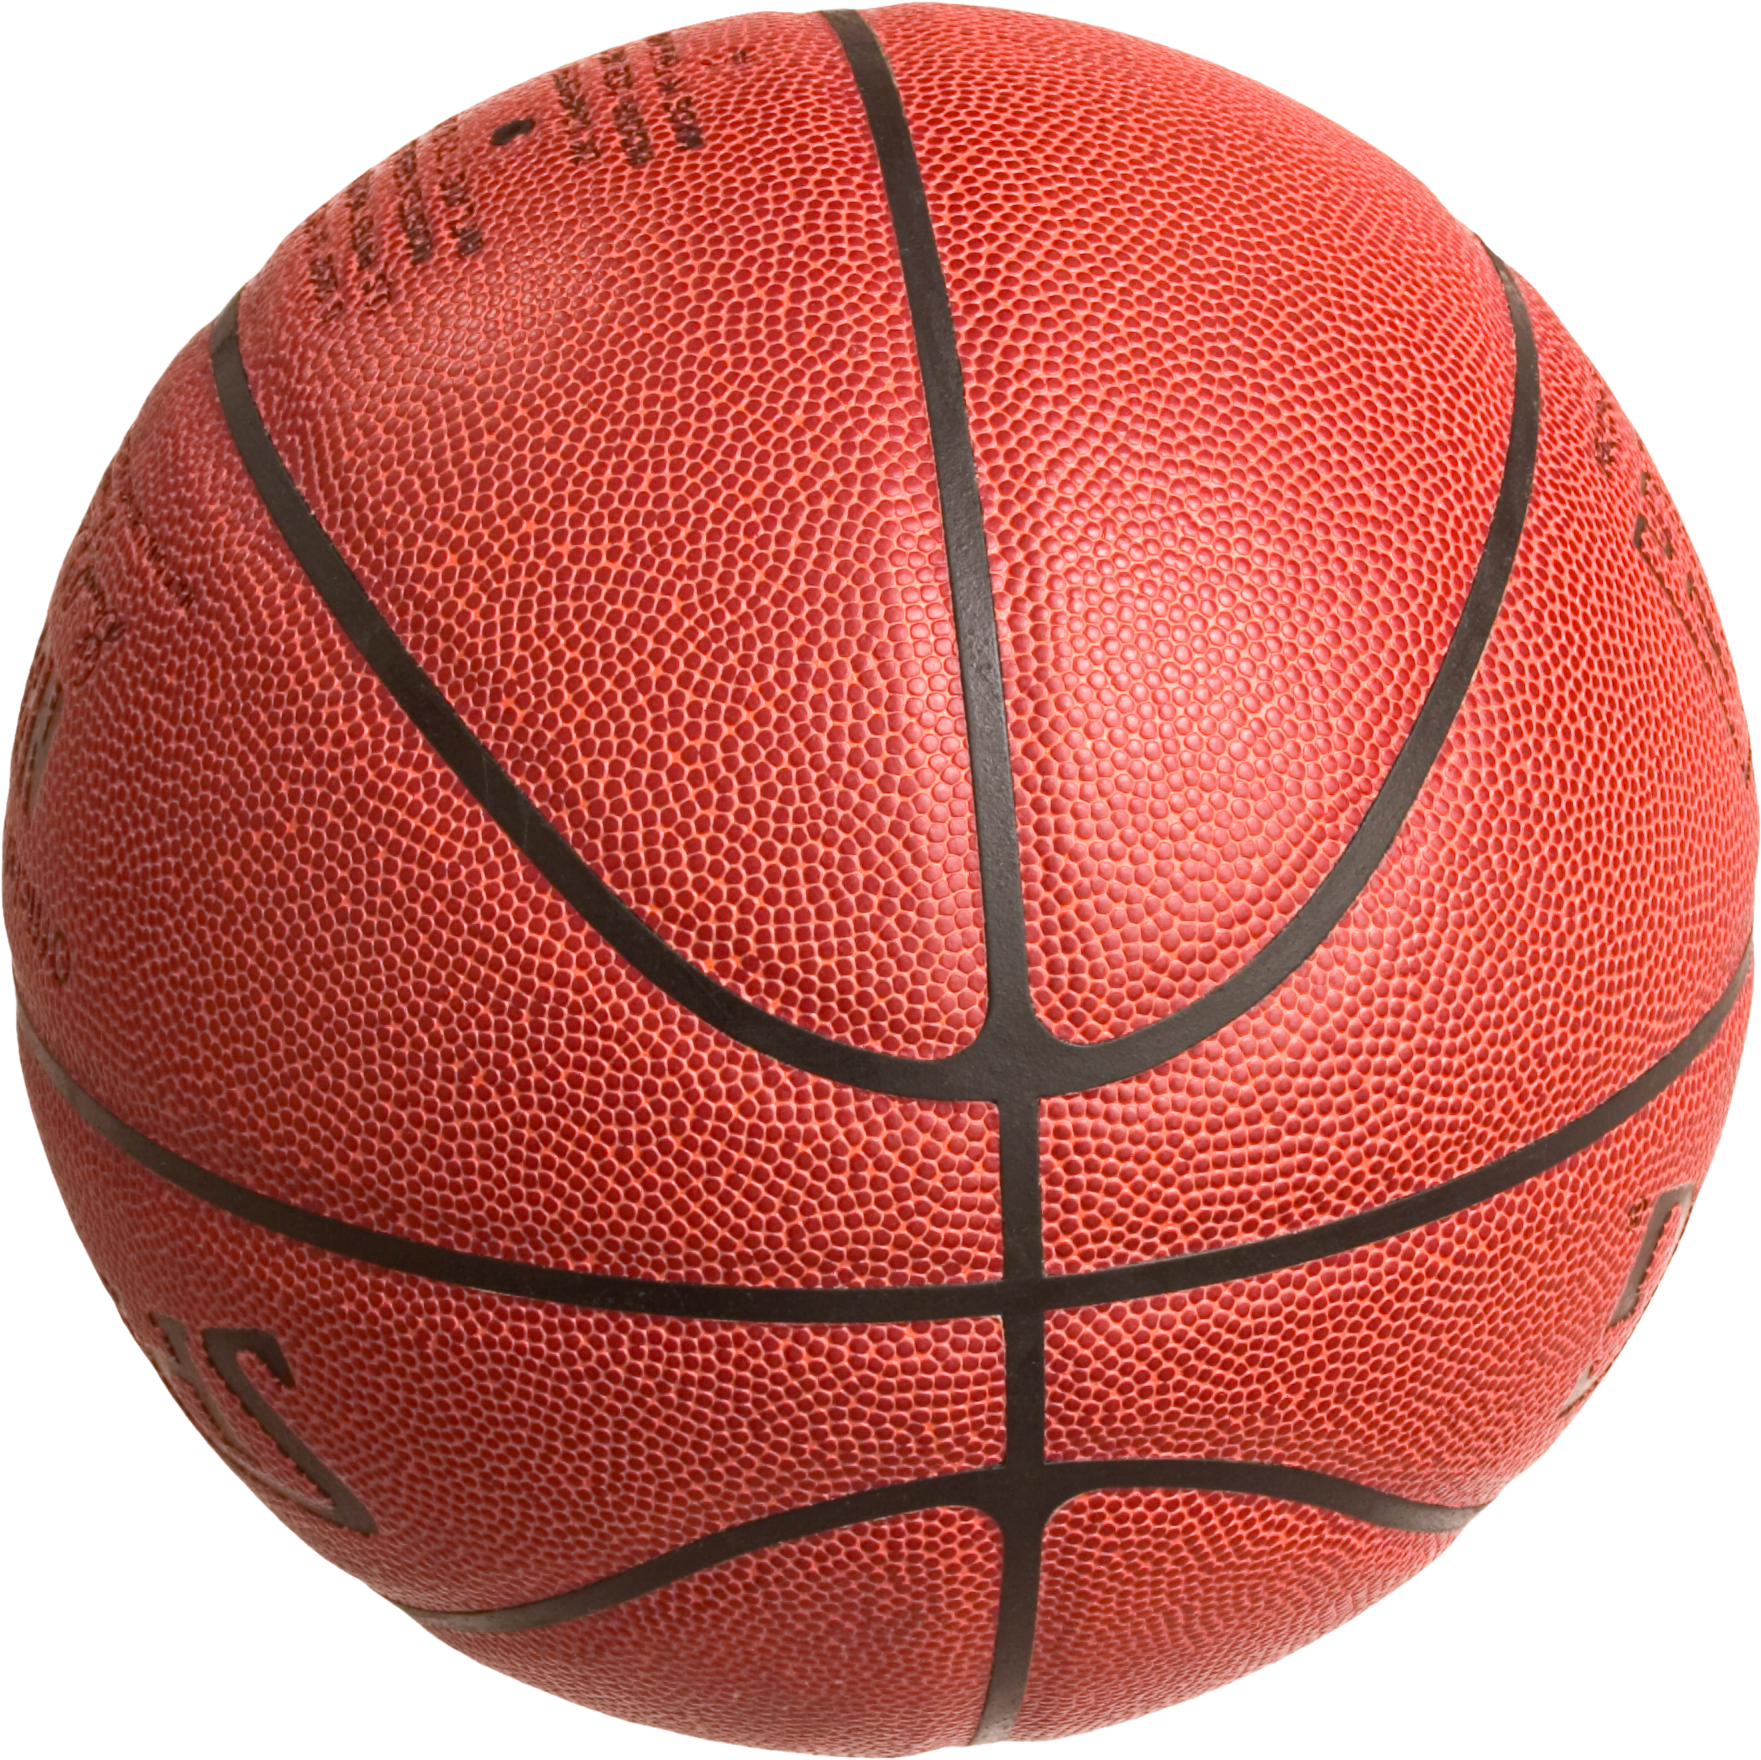 File:Isolated basketball.png.